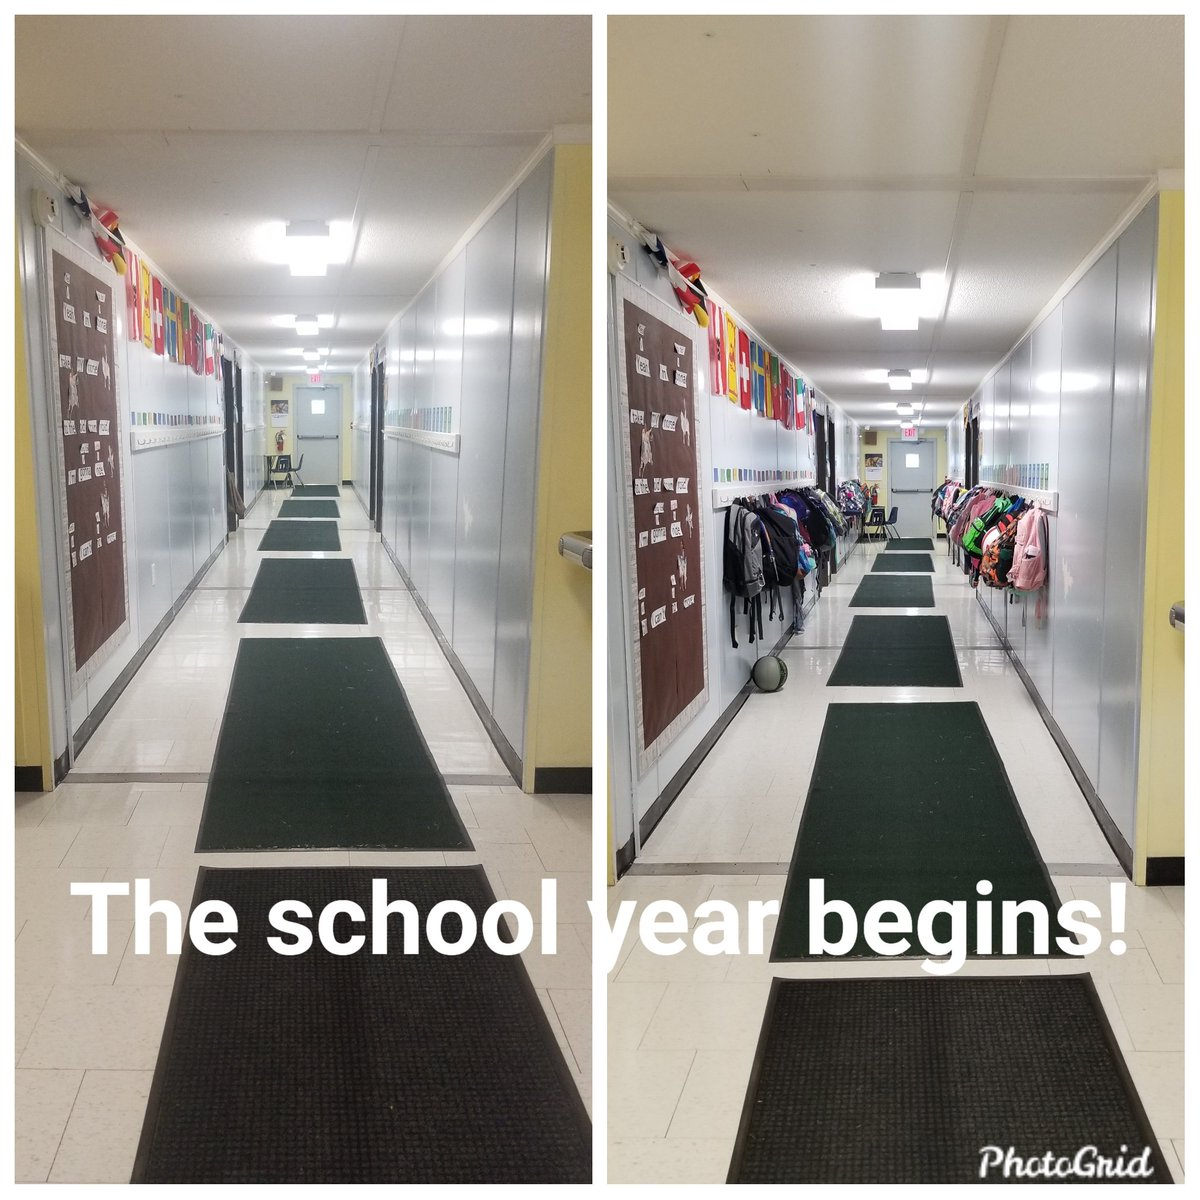 We are ready for a great school year! <a target='_blank' href='http://twitter.com/GlebeAPS'>@GlebeAPS</a> <a target='_blank' href='http://search.twitter.com/search?q=glebeeagles'><a target='_blank' href='https://twitter.com/hashtag/glebeeagles?src=hash'>#glebeeagles</a></a> <a target='_blank' href='https://t.co/wBTVNswPIa'>https://t.co/wBTVNswPIa</a>